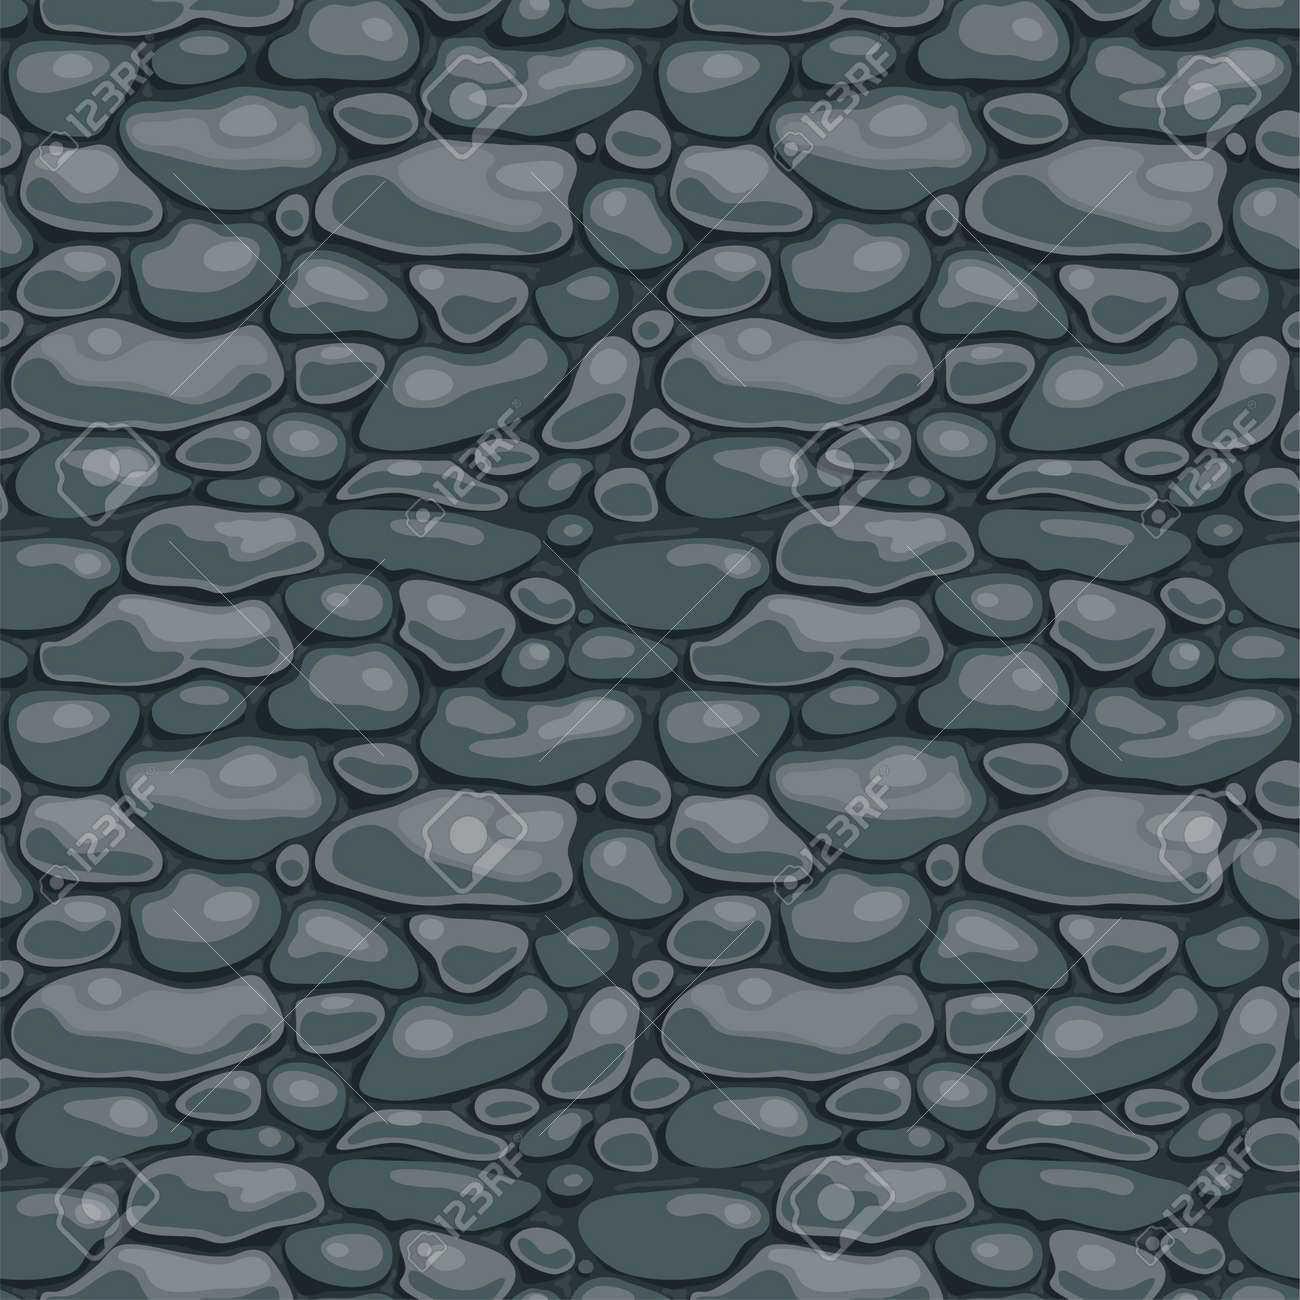 Rock Wall Texture Seamless Stone or Rock Wall Seamless